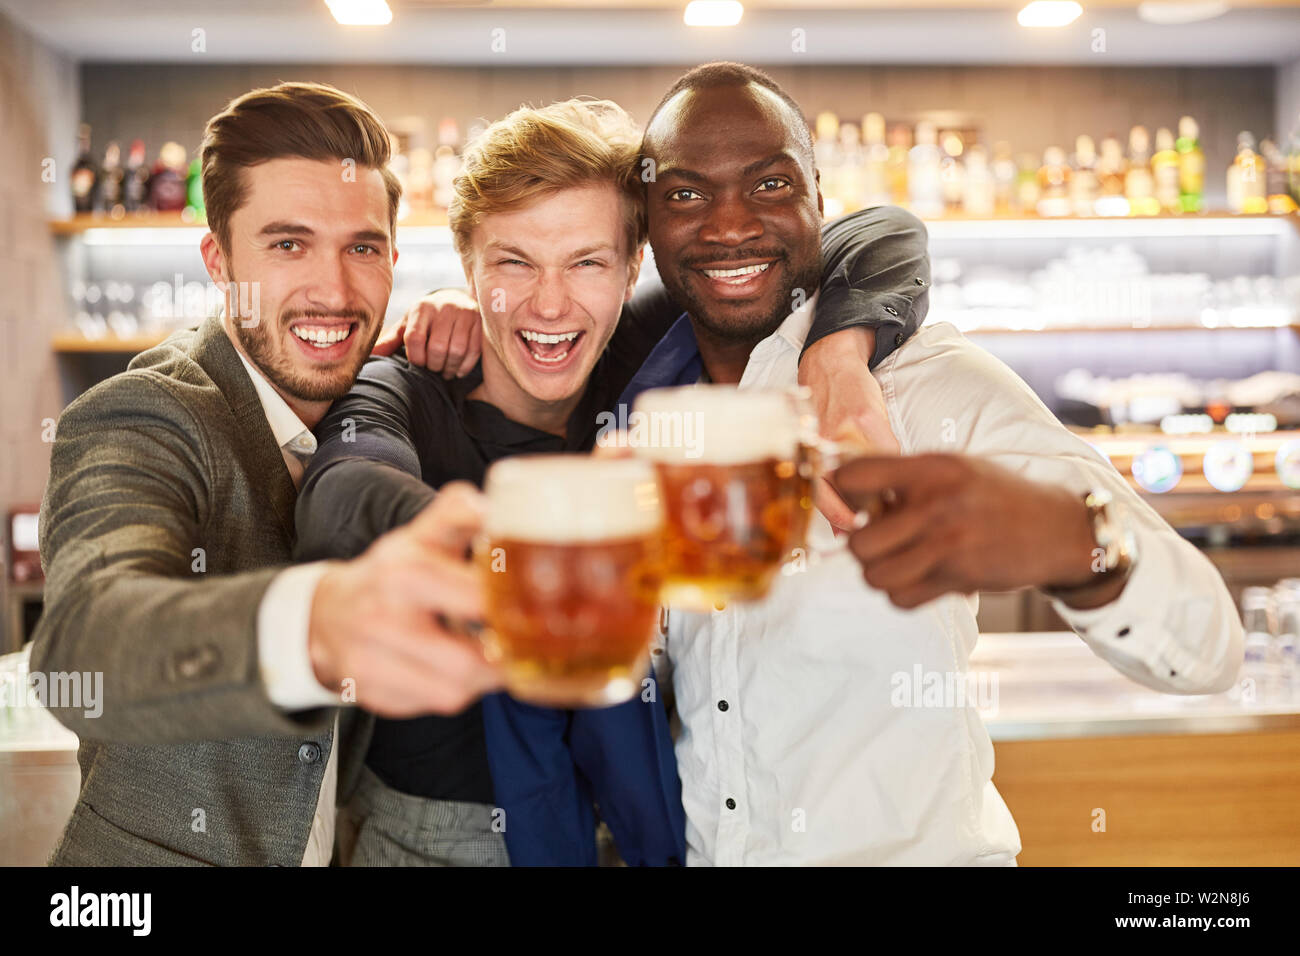 Three men as best friends celebrate hilariously with beer on a pub crawl - Stock Image